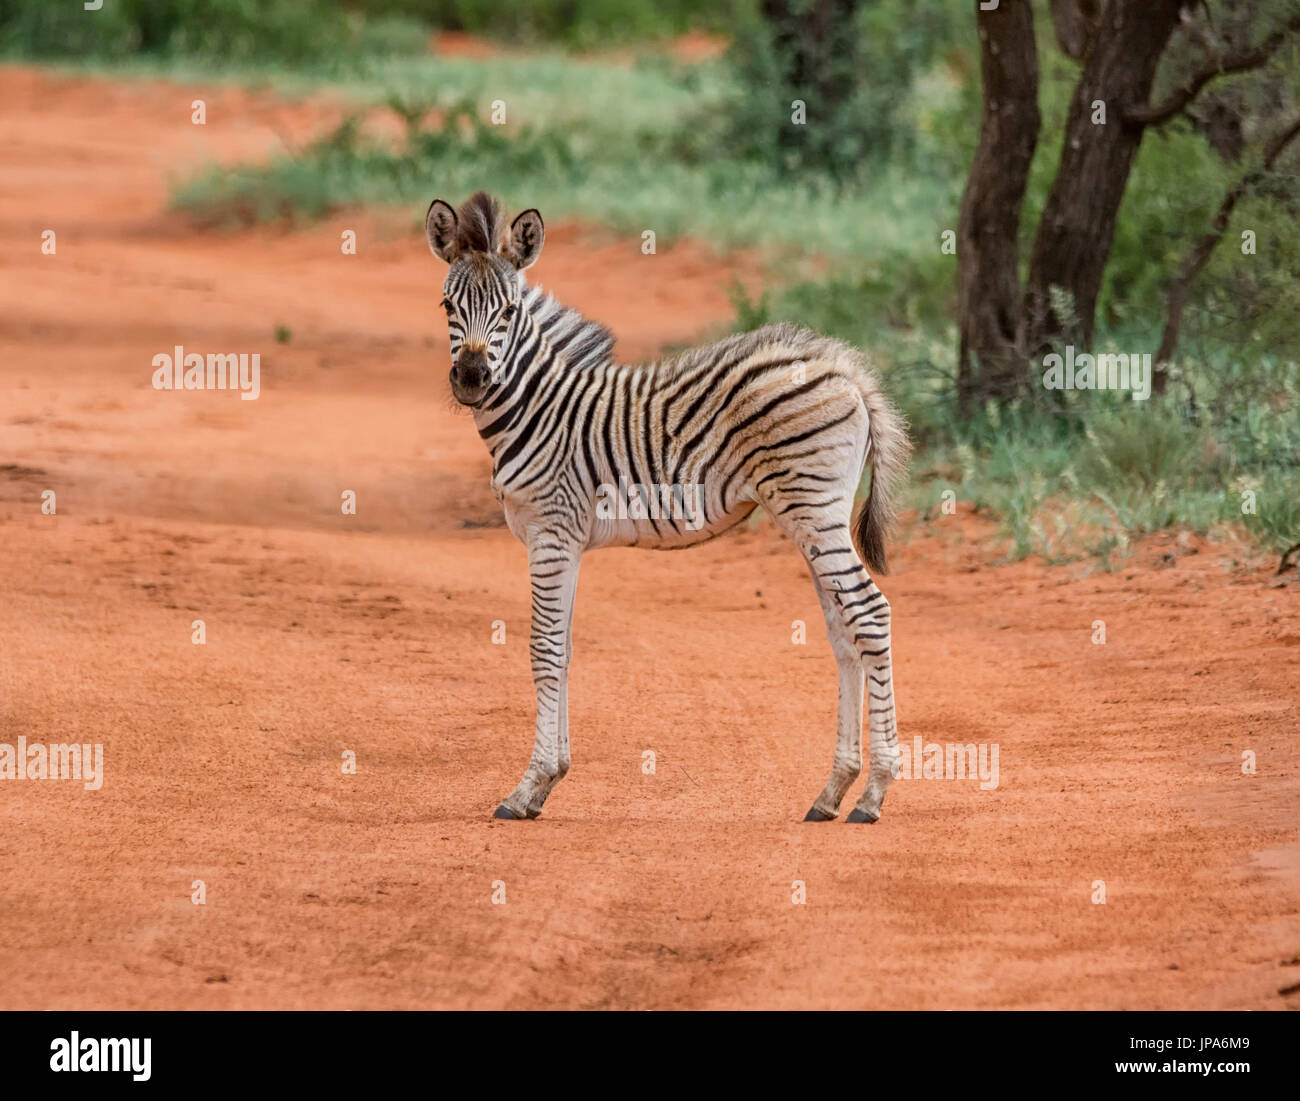 A Zebra foal in Southern African savanna - Stock Image